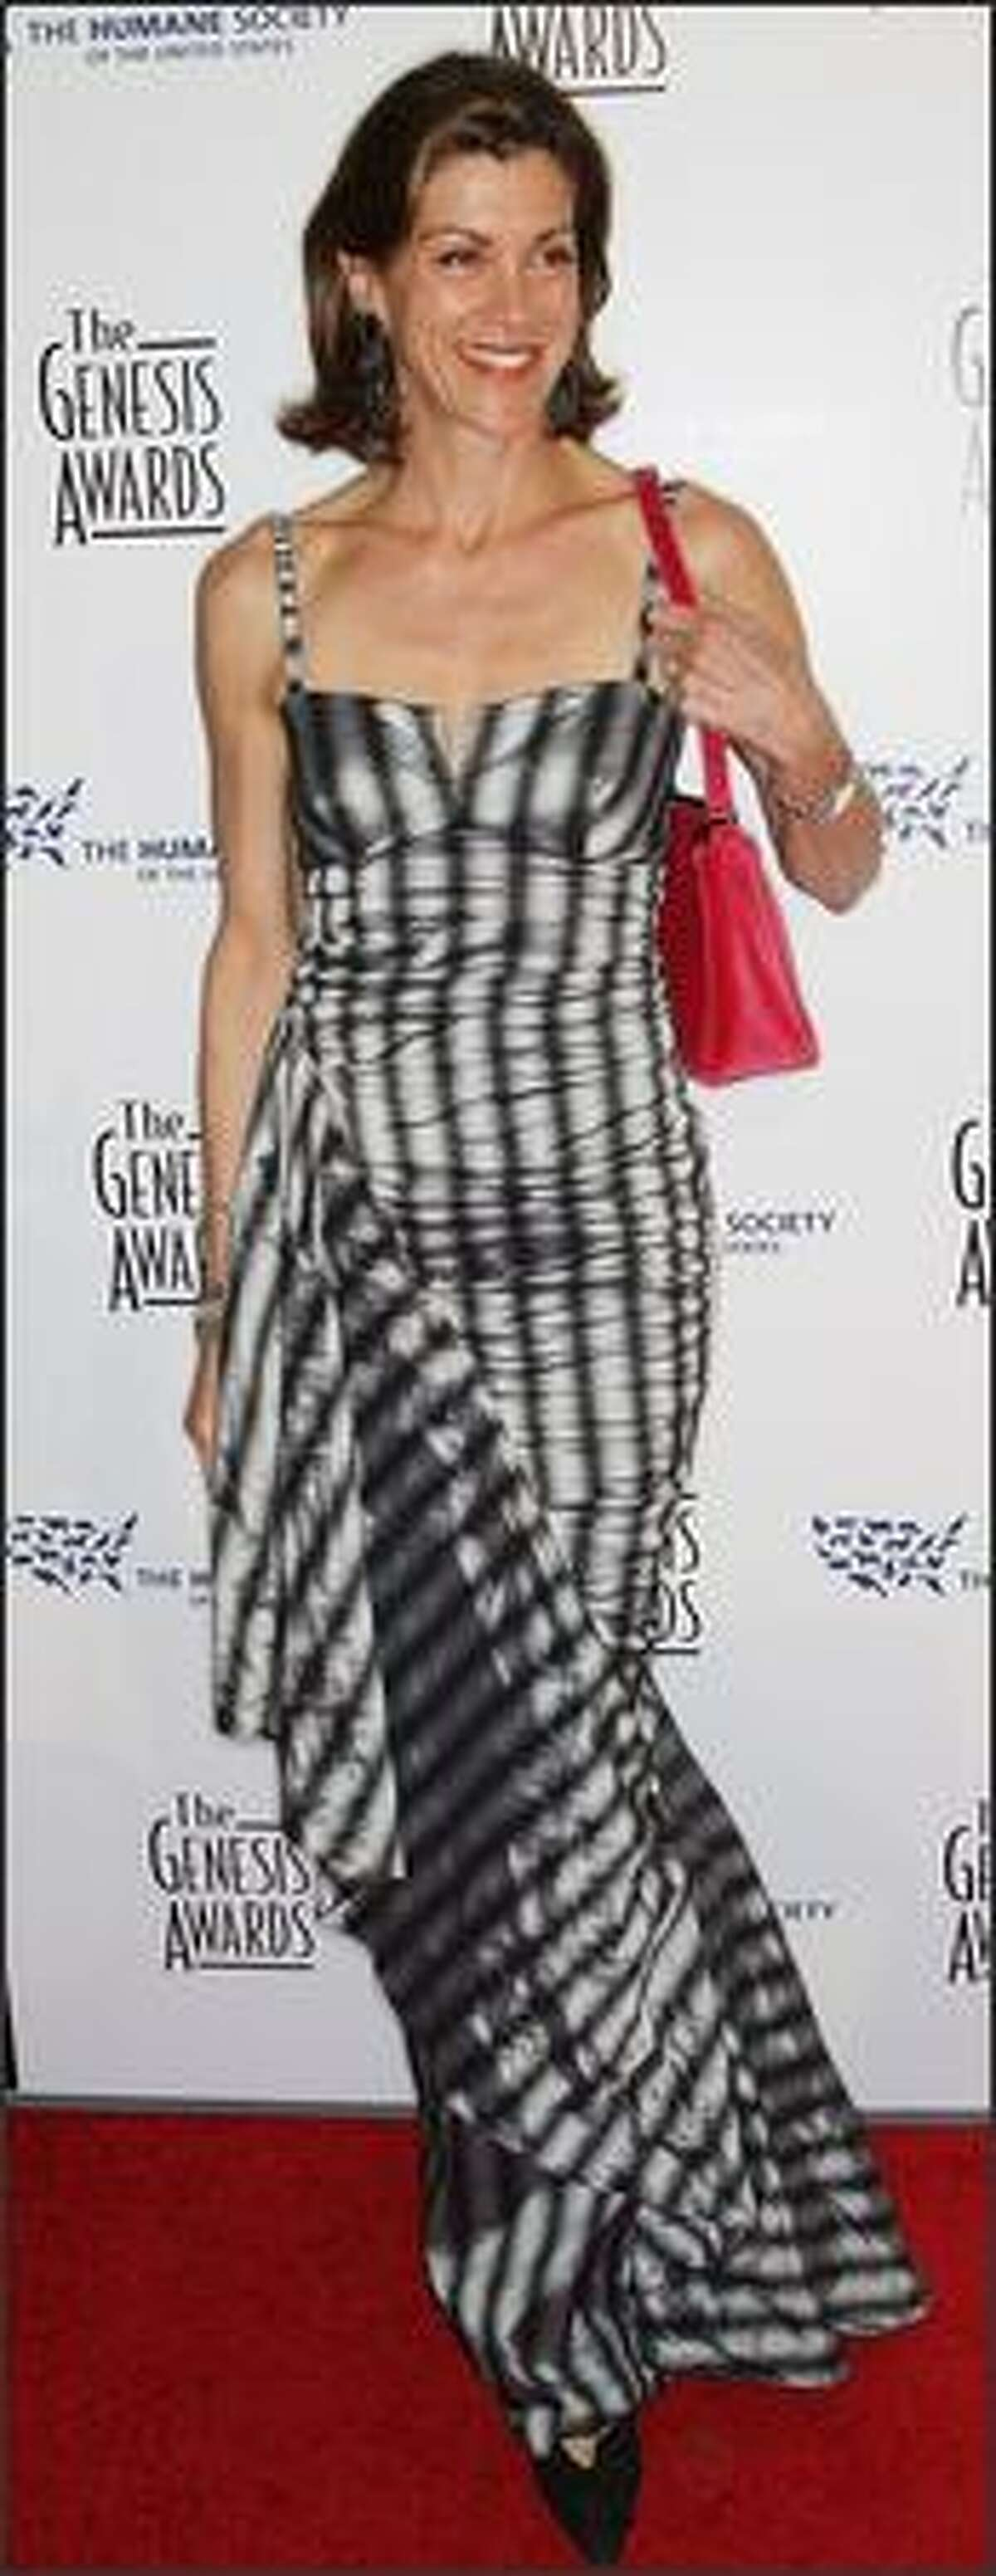 Actress Wendie Malick attends the 23rd annual Genesis Awards at the Beverly Hilton Hotel in Beverly Hills, Calif.